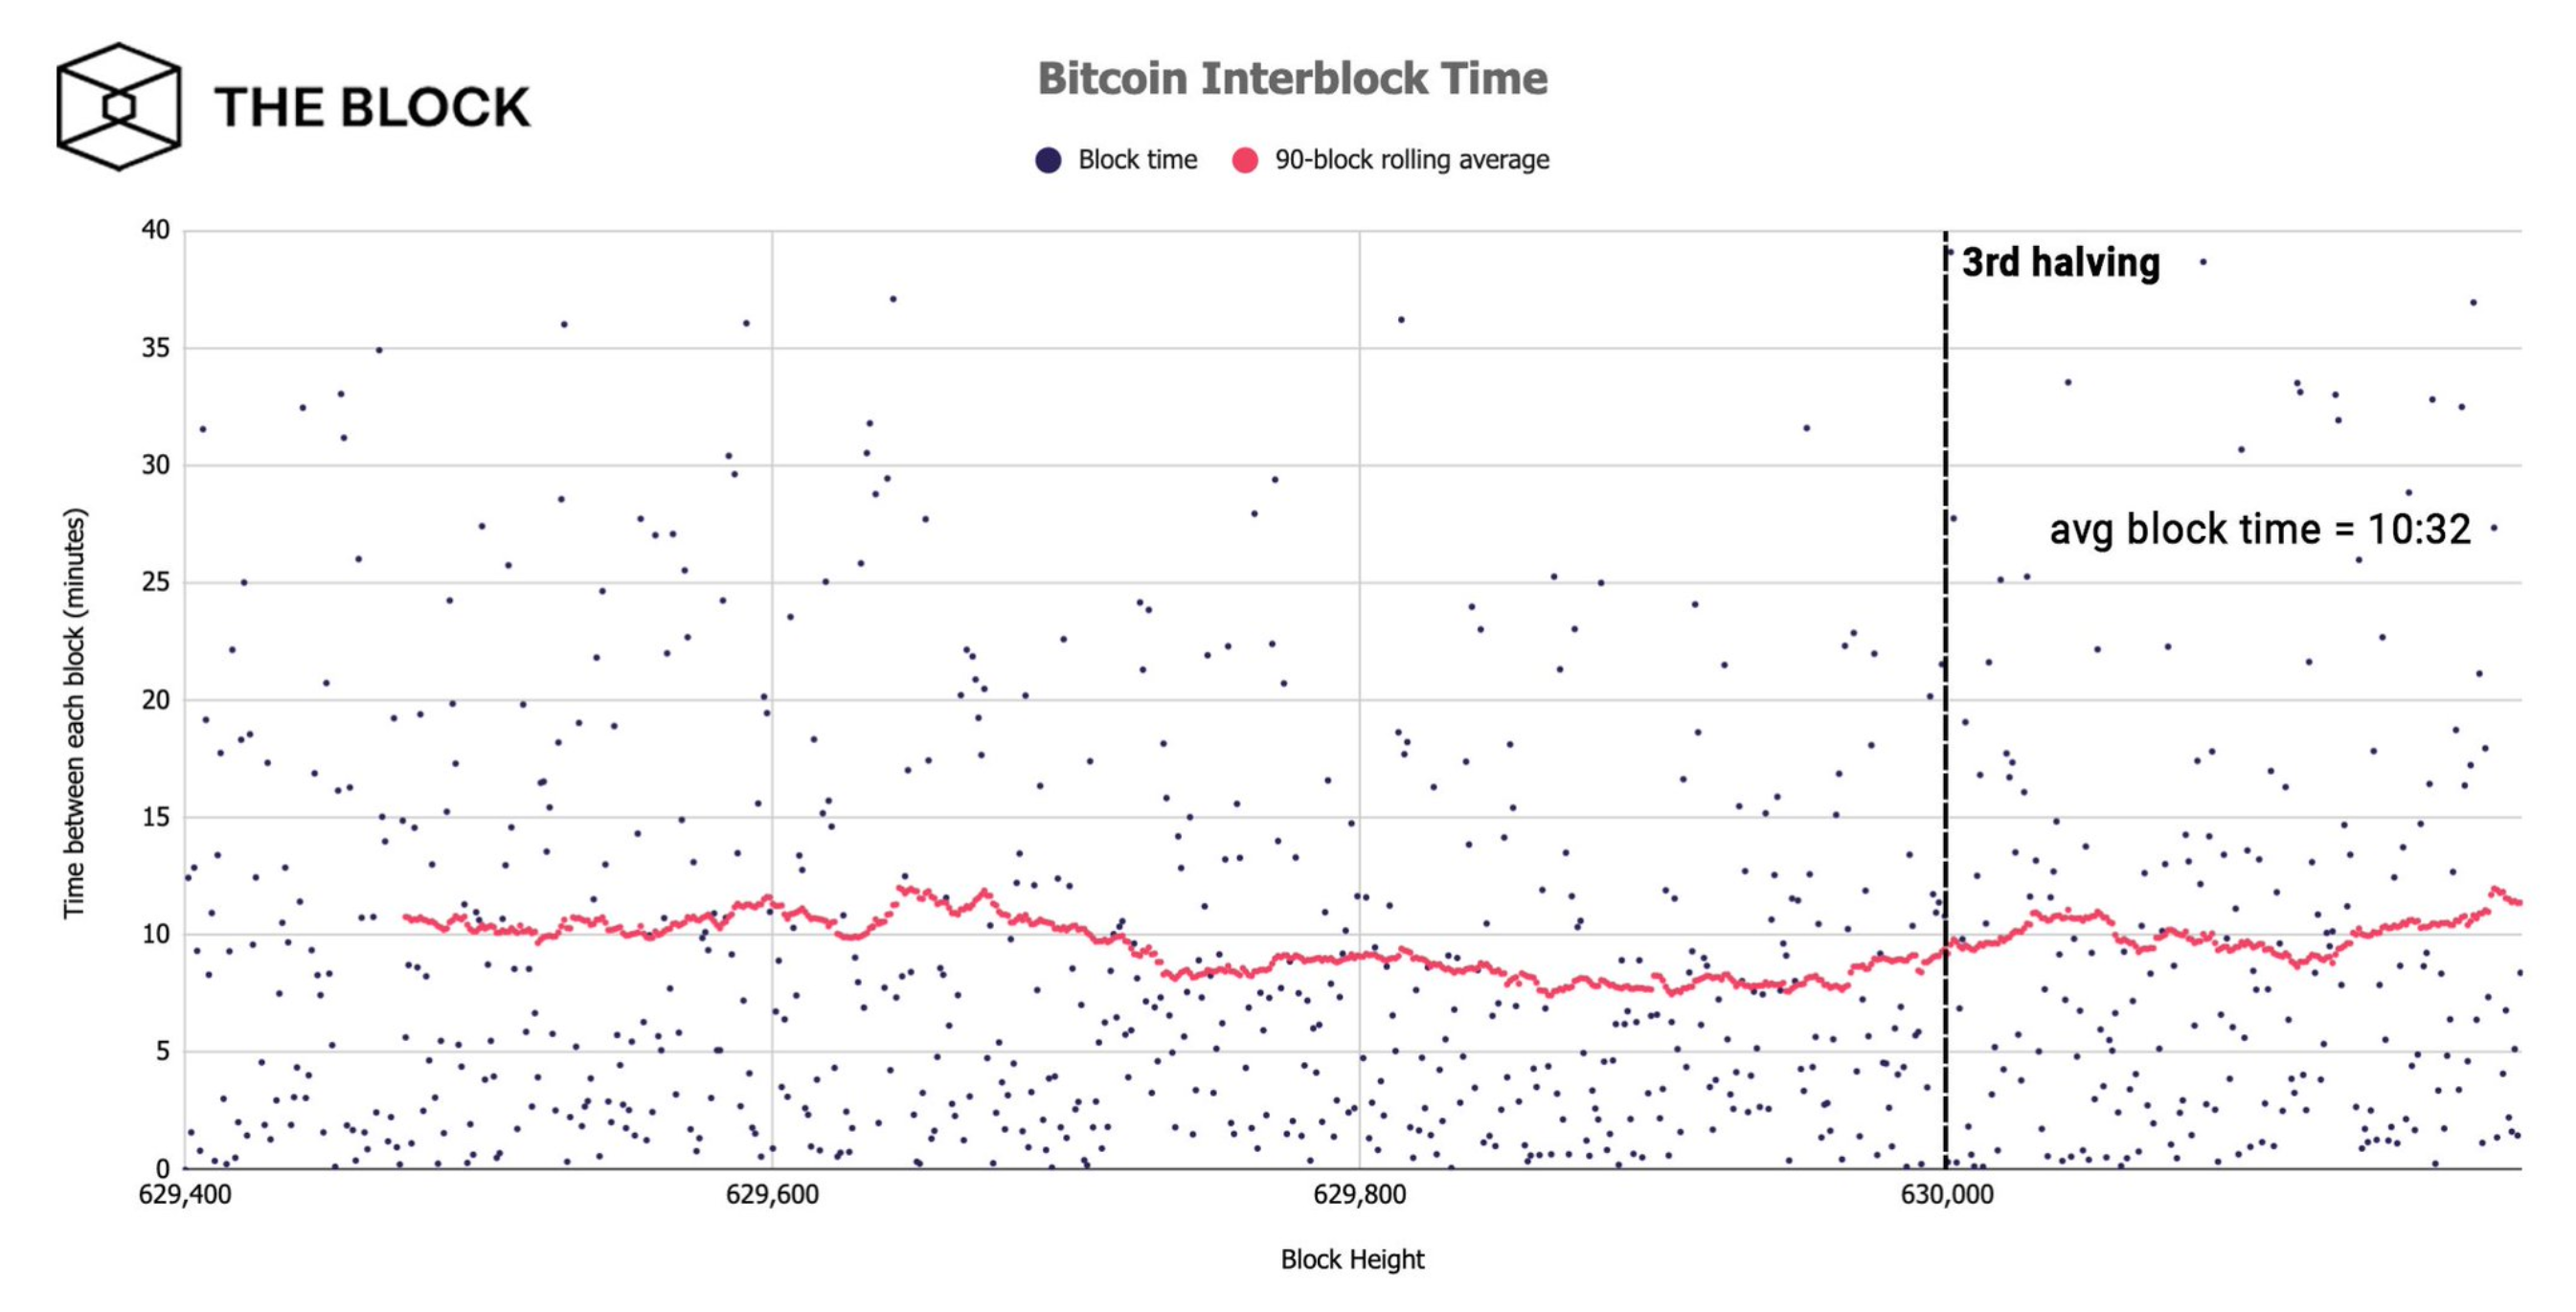 Bitcoin's hash rate appears to drop 16% after miner revenue declines by 44%